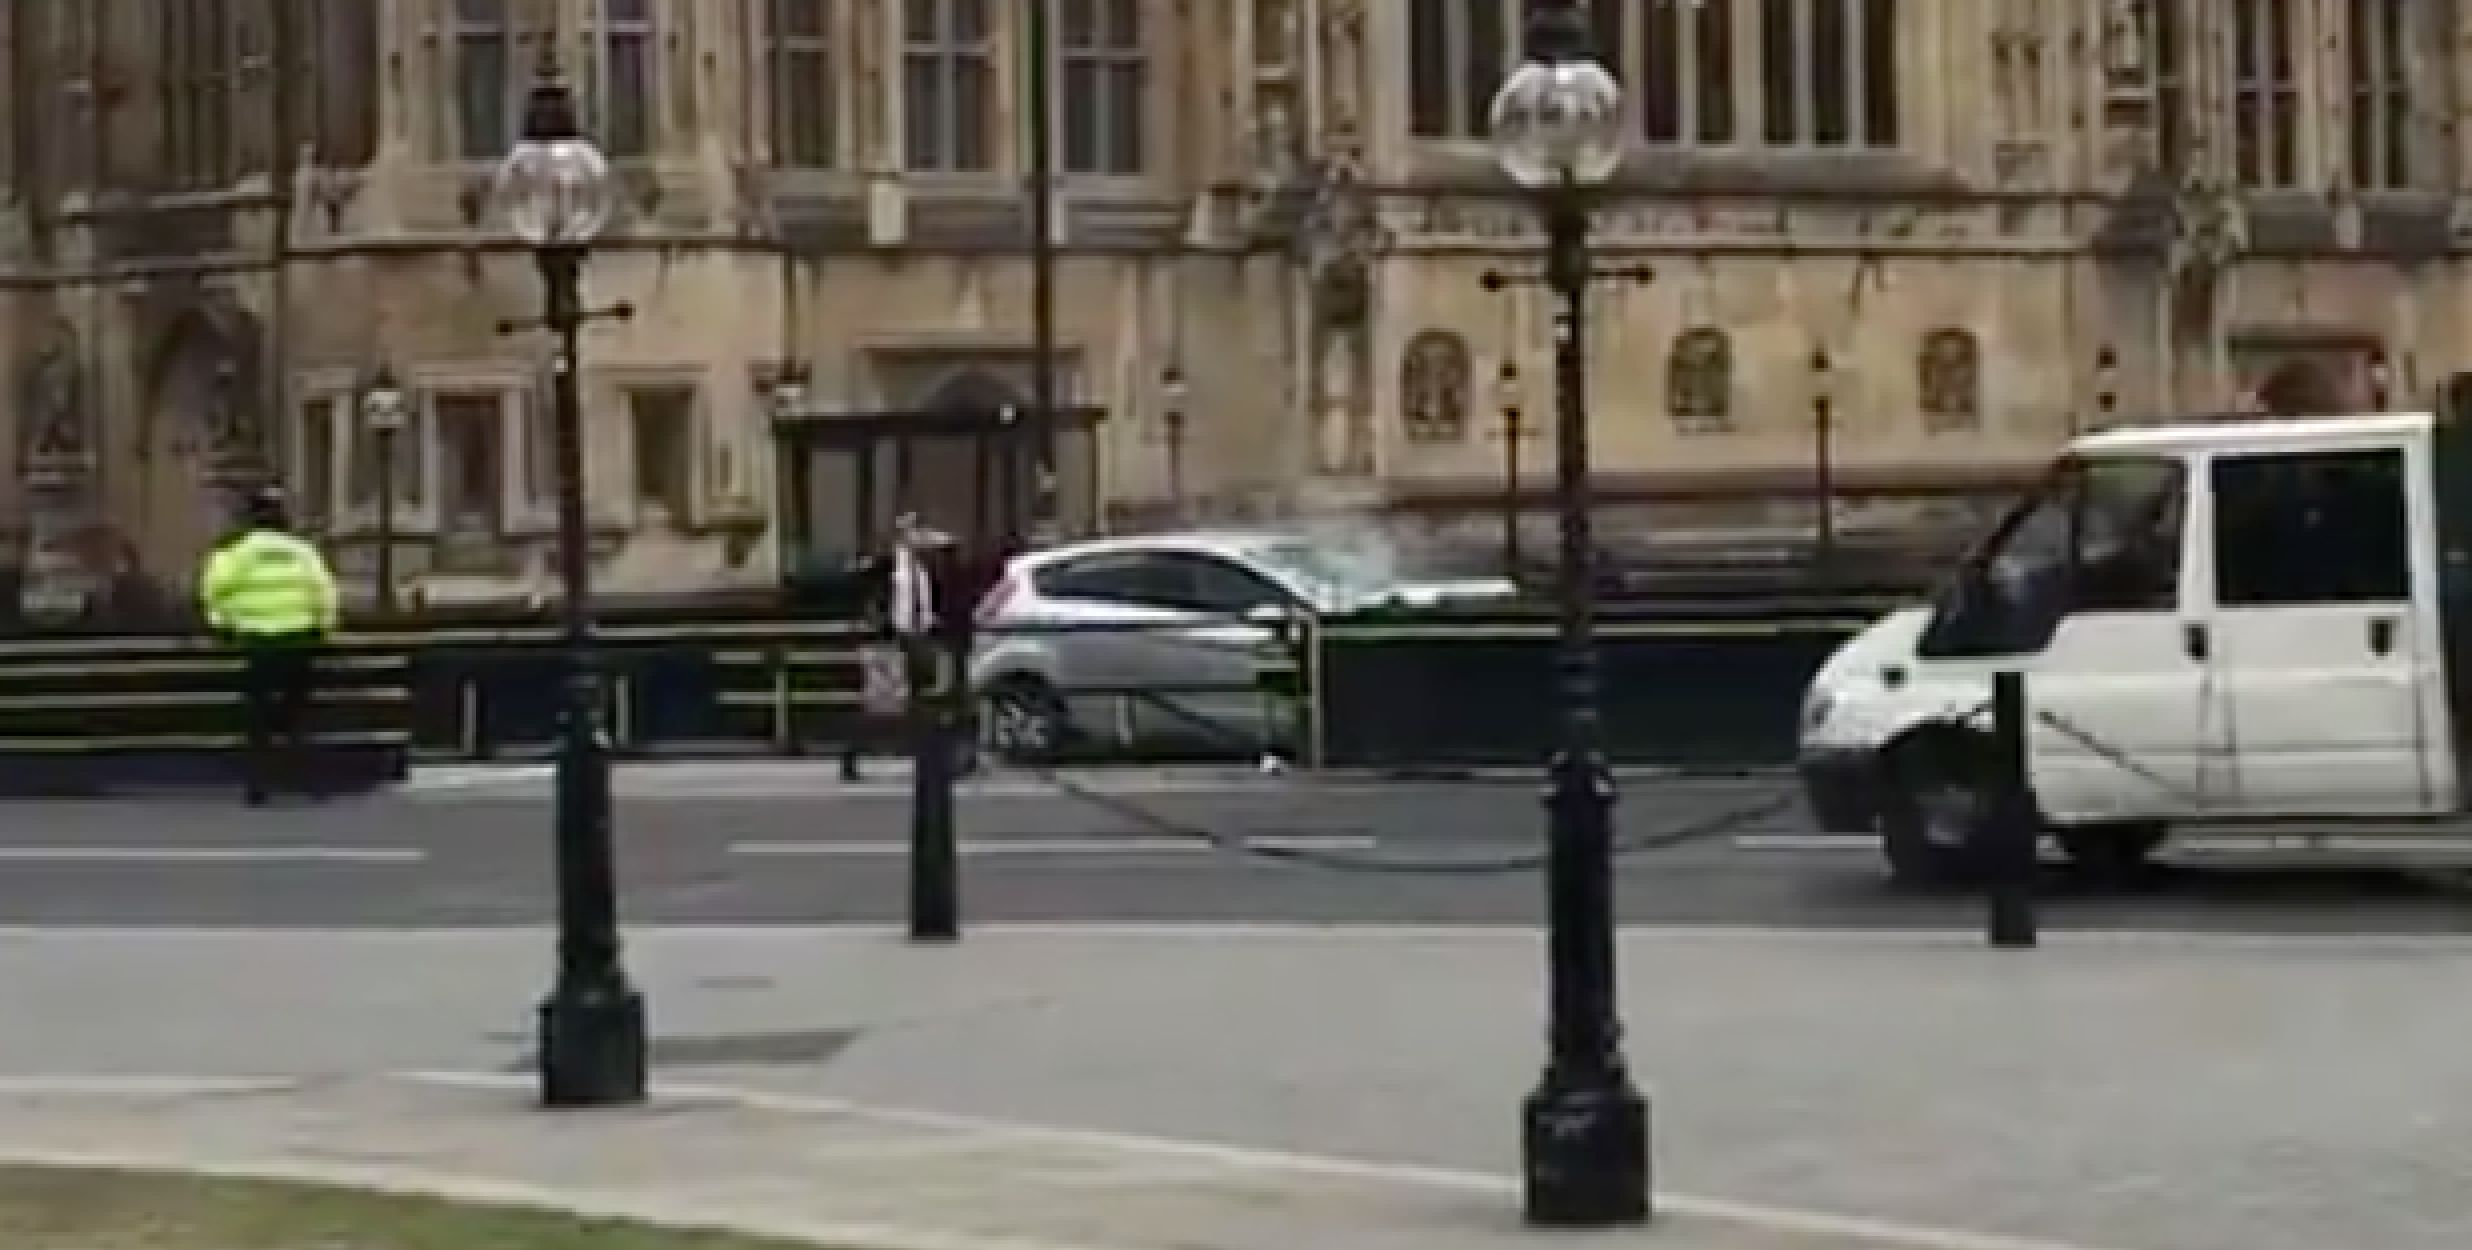 London police: auto crash outside parliament a 'terrorist incident'